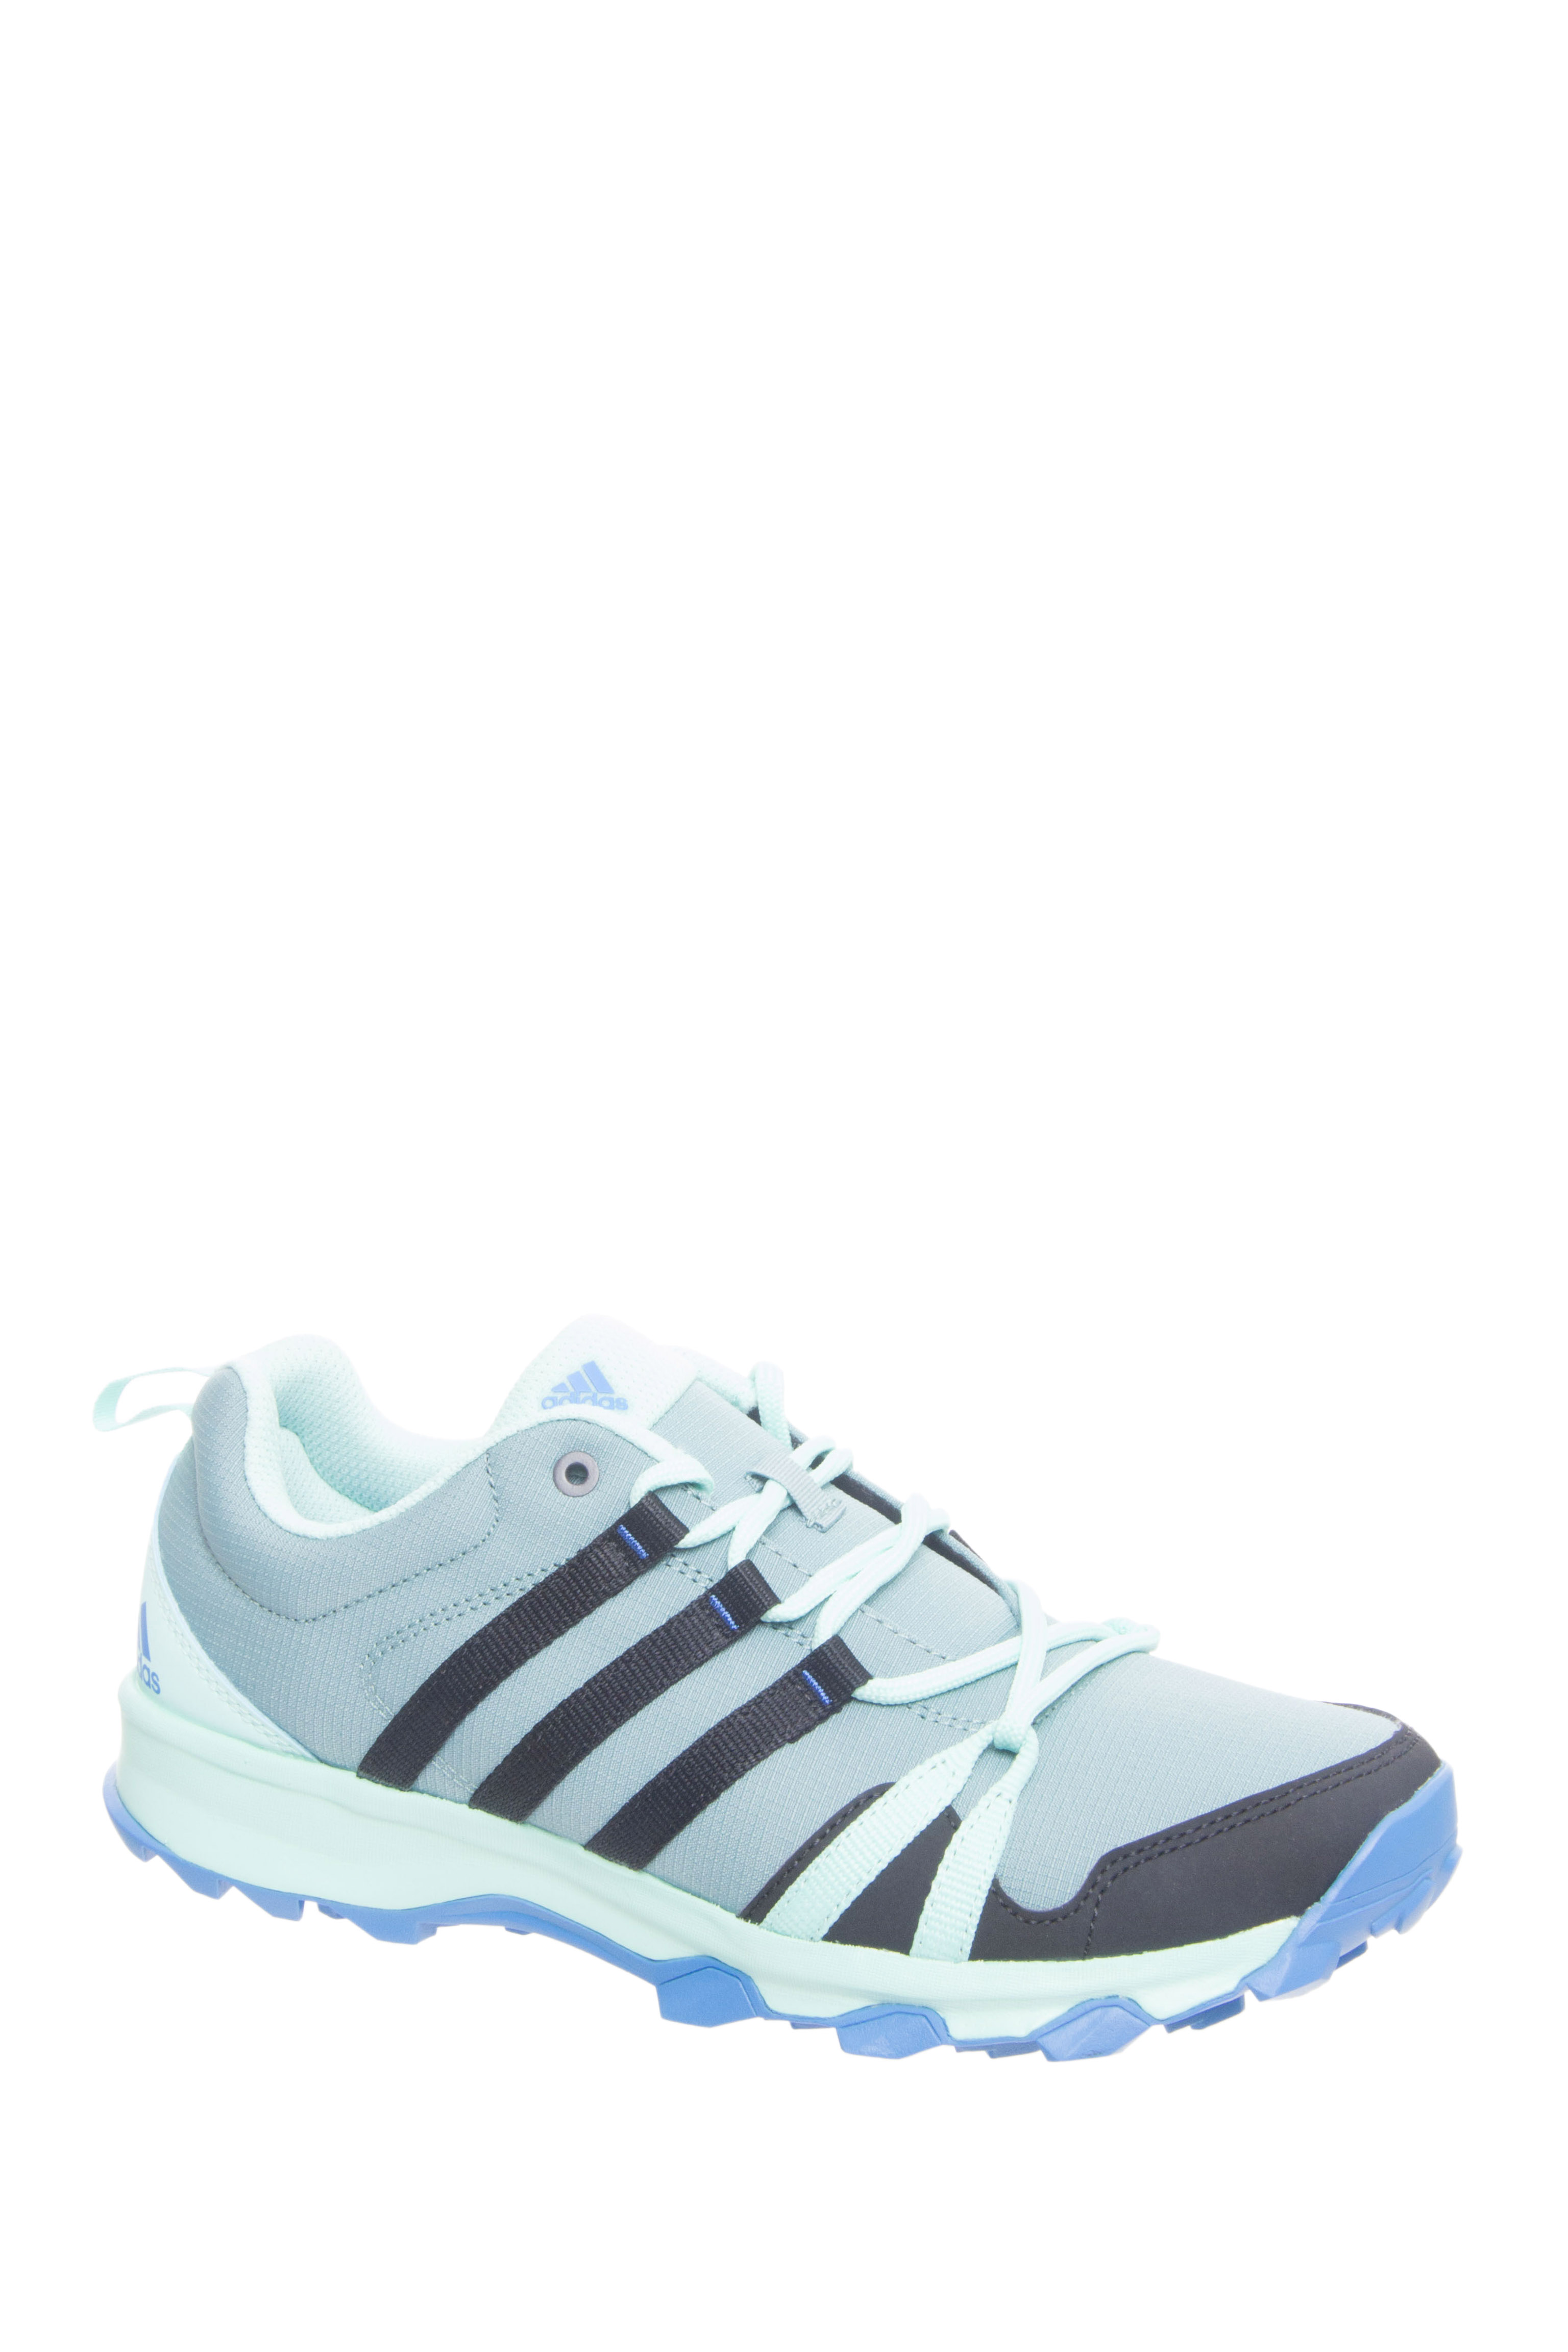 Adidas Outdoor Tracerocker Lace Up Running Sneakers - Ice Blue / Black